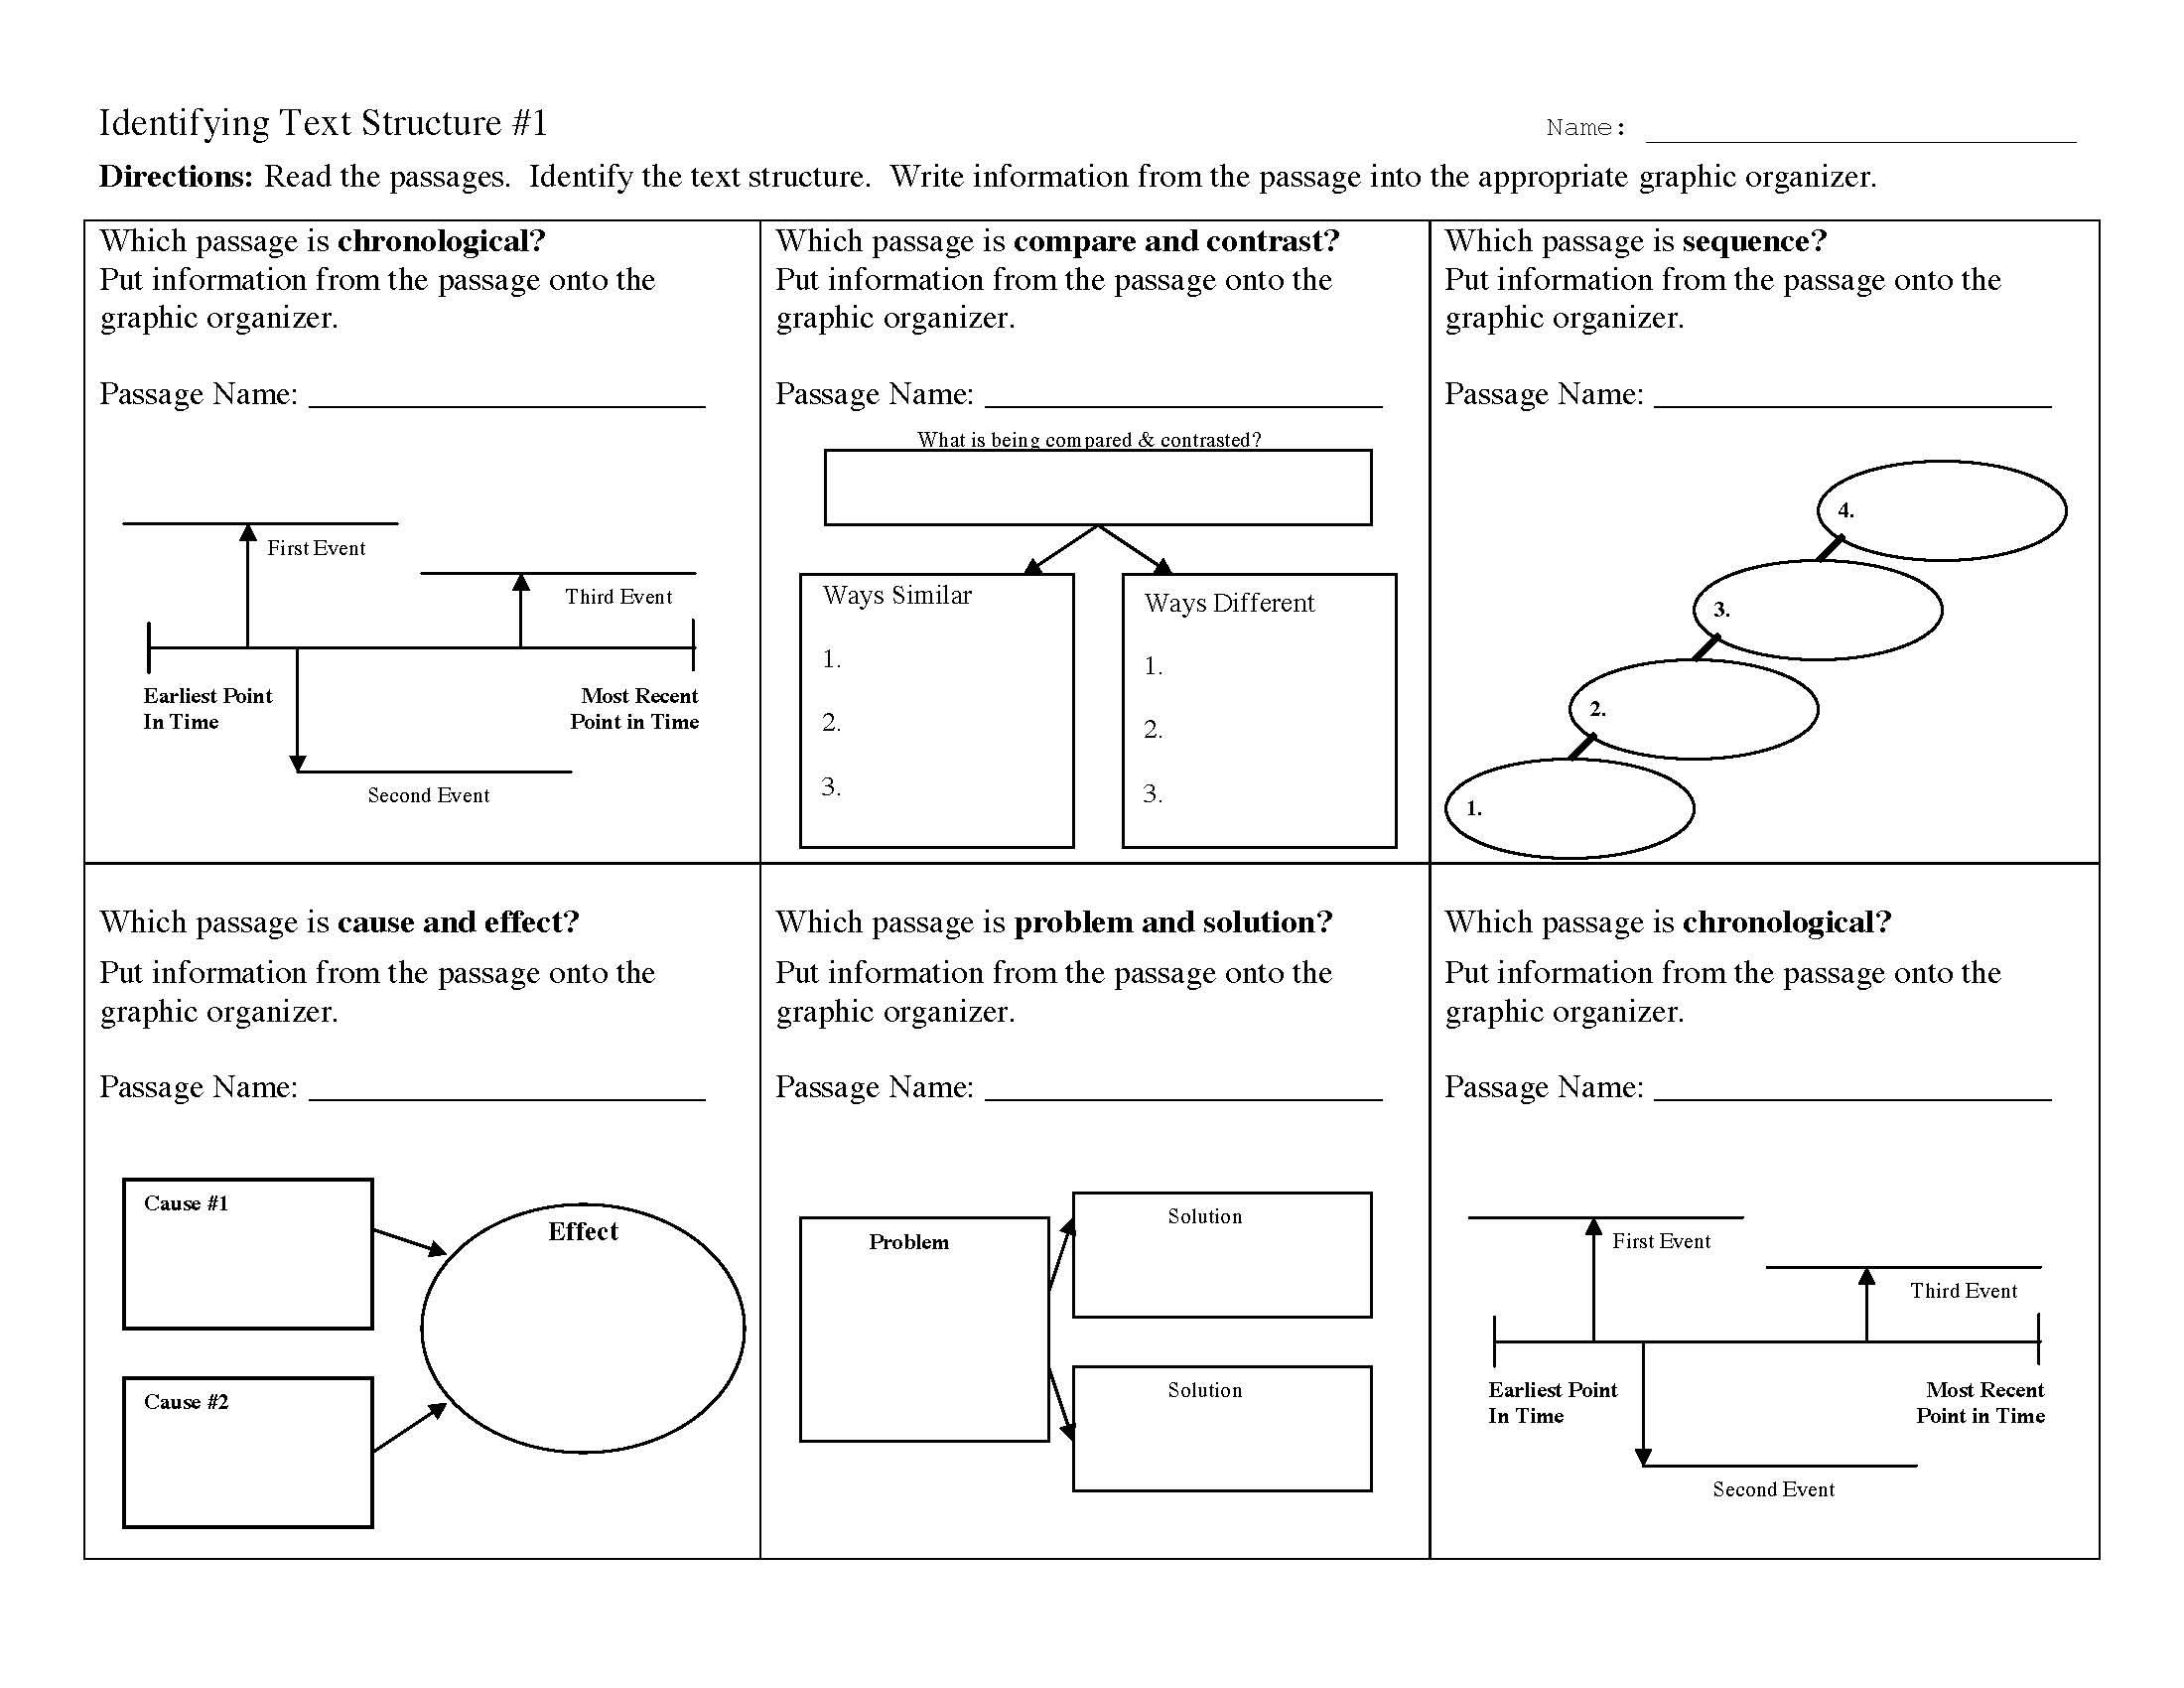 Description Text Structure Graphic Organizer